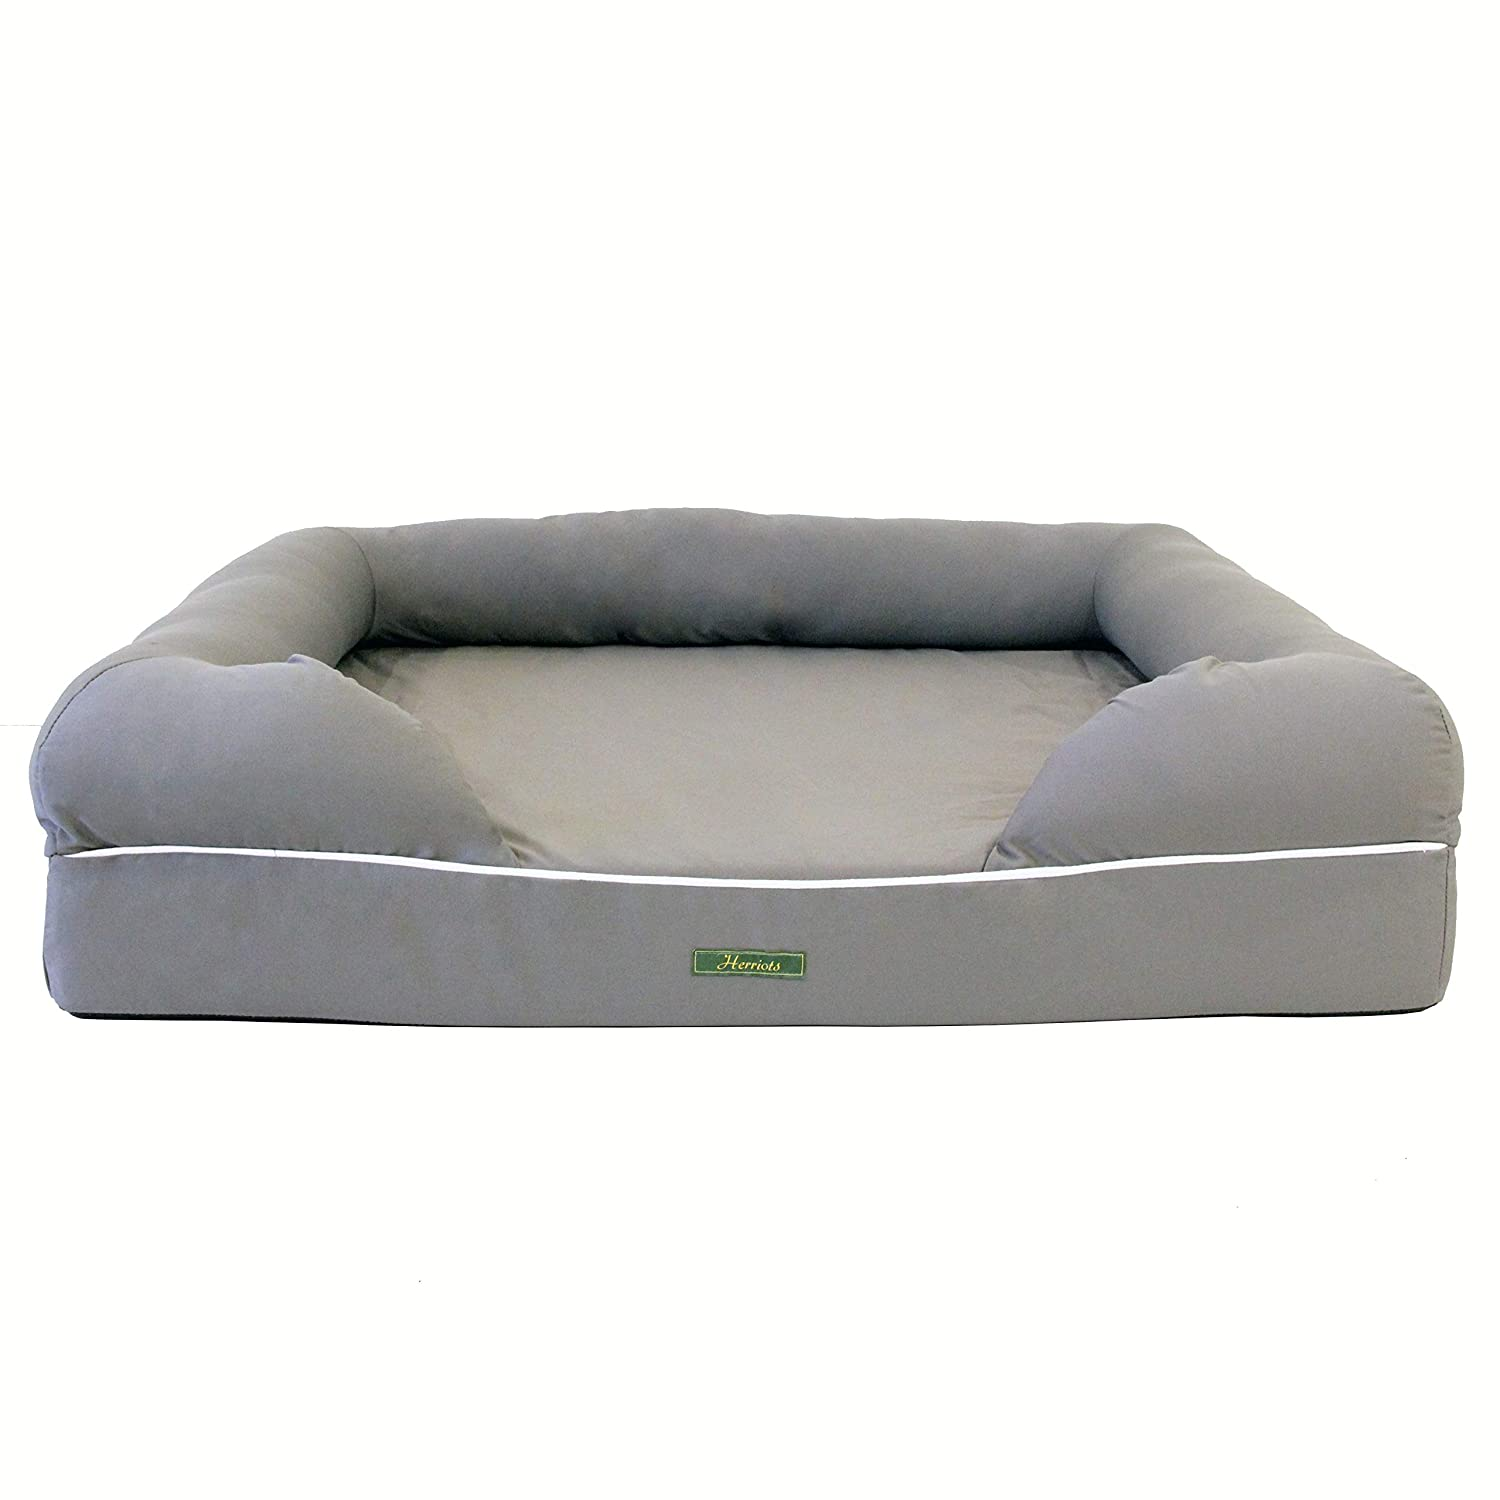 Herriots Memory Foam Dog Bed XX-Large (127cm x 102cm x 33cm) Orthopaedic Mattress (GREY) Waterproof Spare Covers & Blankets Available